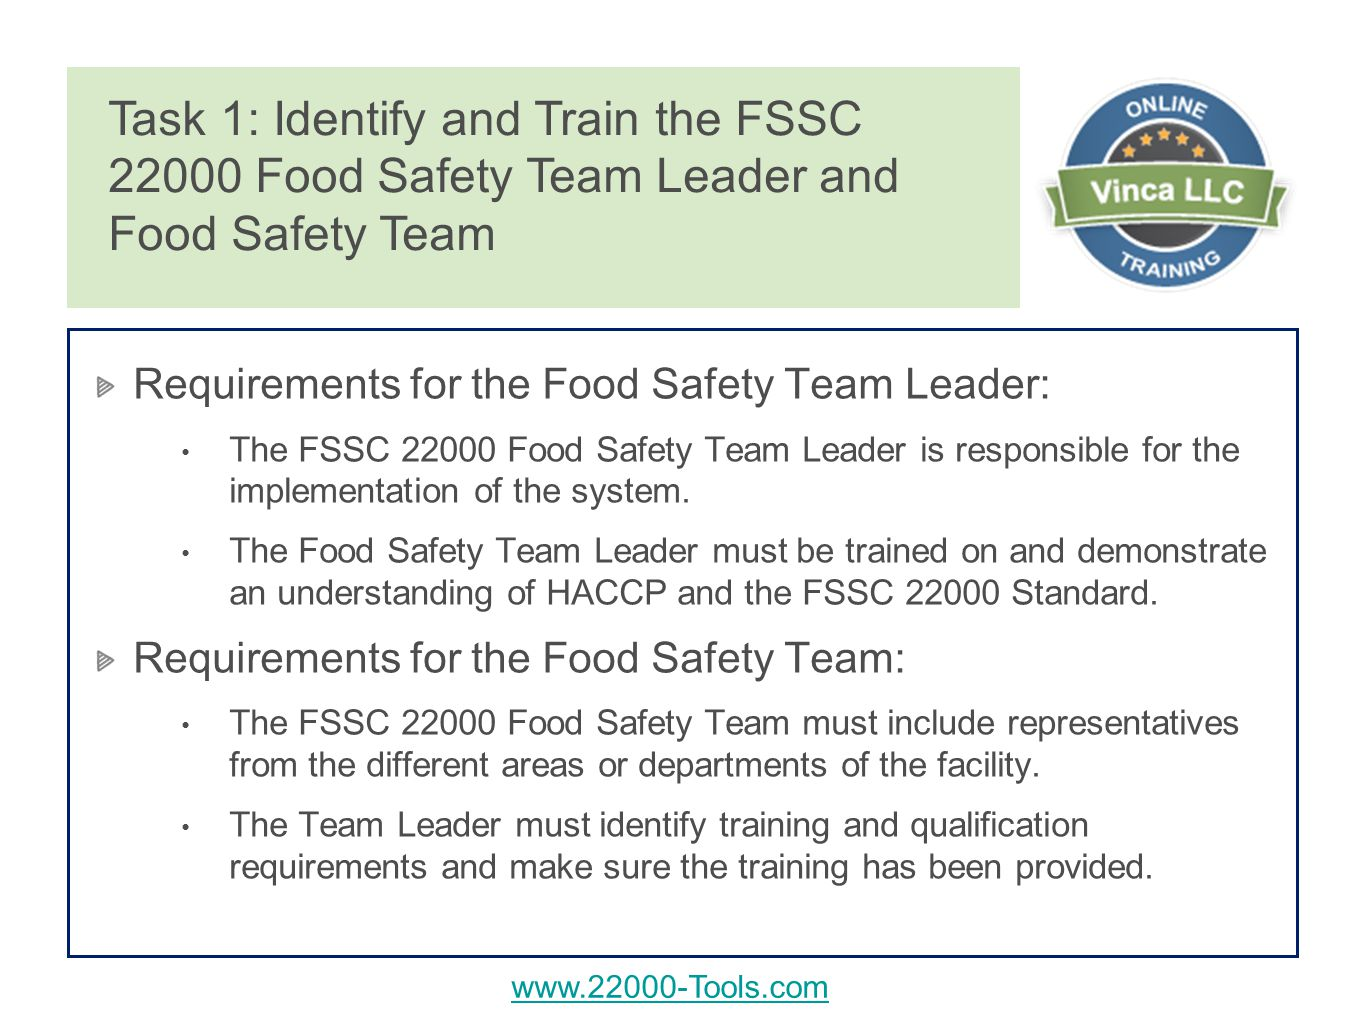 Requirements for the Food Safety Team Leader: The FSSC Food Safety Team Leader is responsible for the implementation of the system.